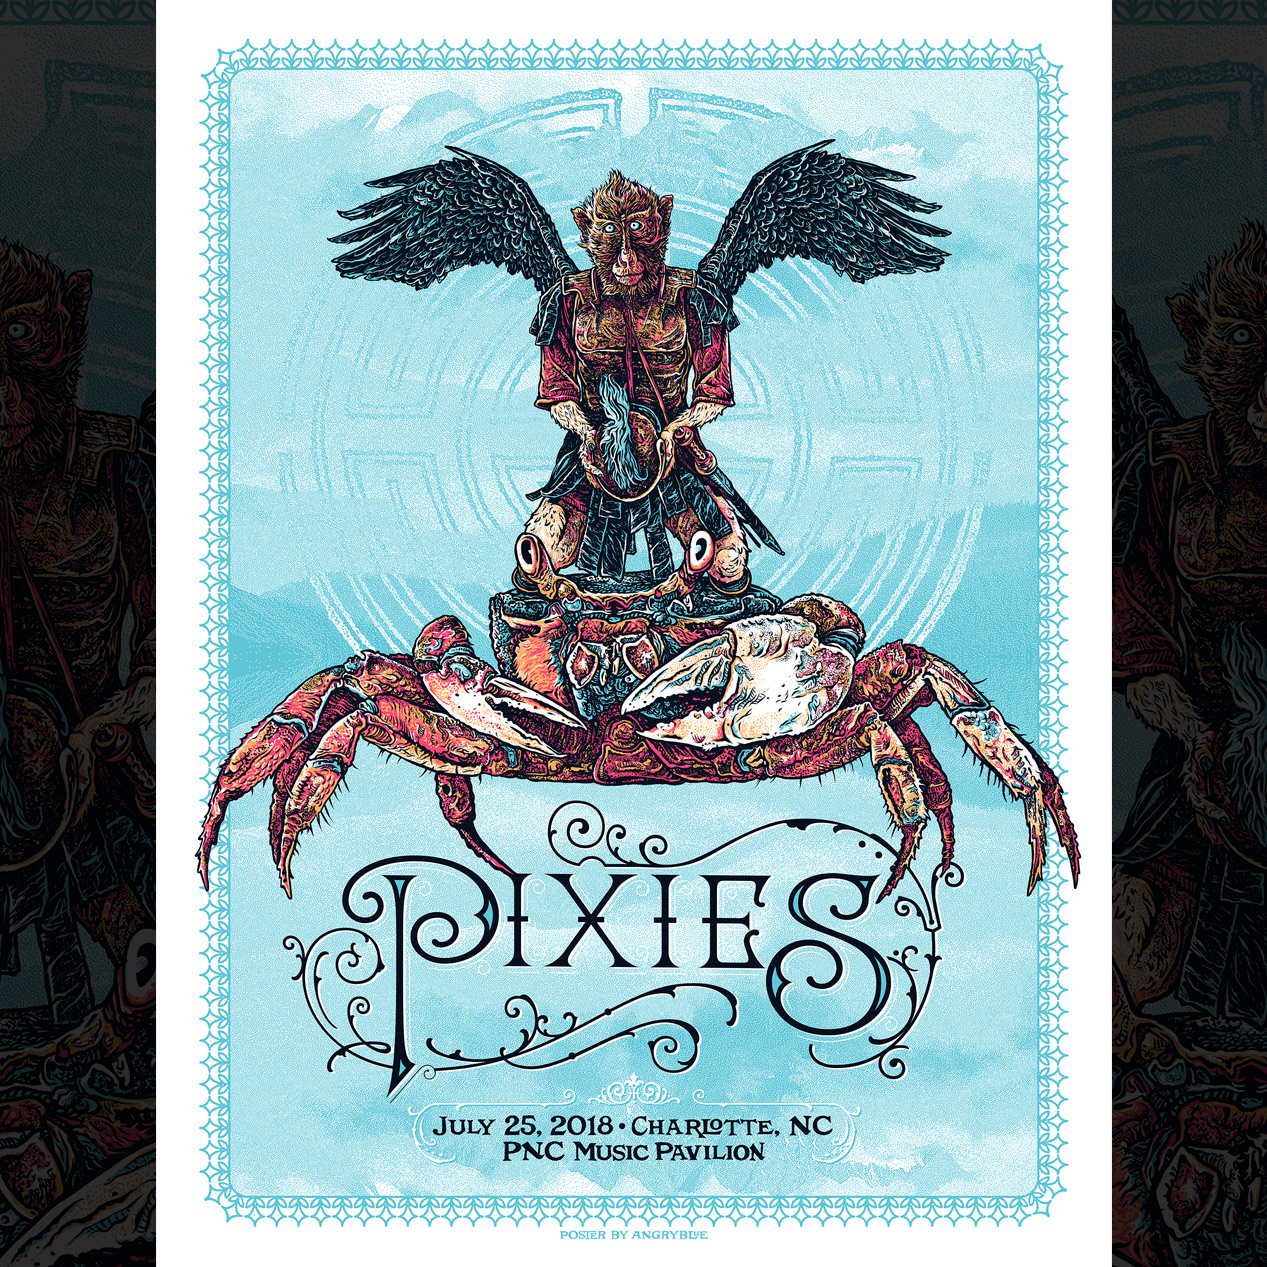 Pixies_2018_by_Angryblue.jpg